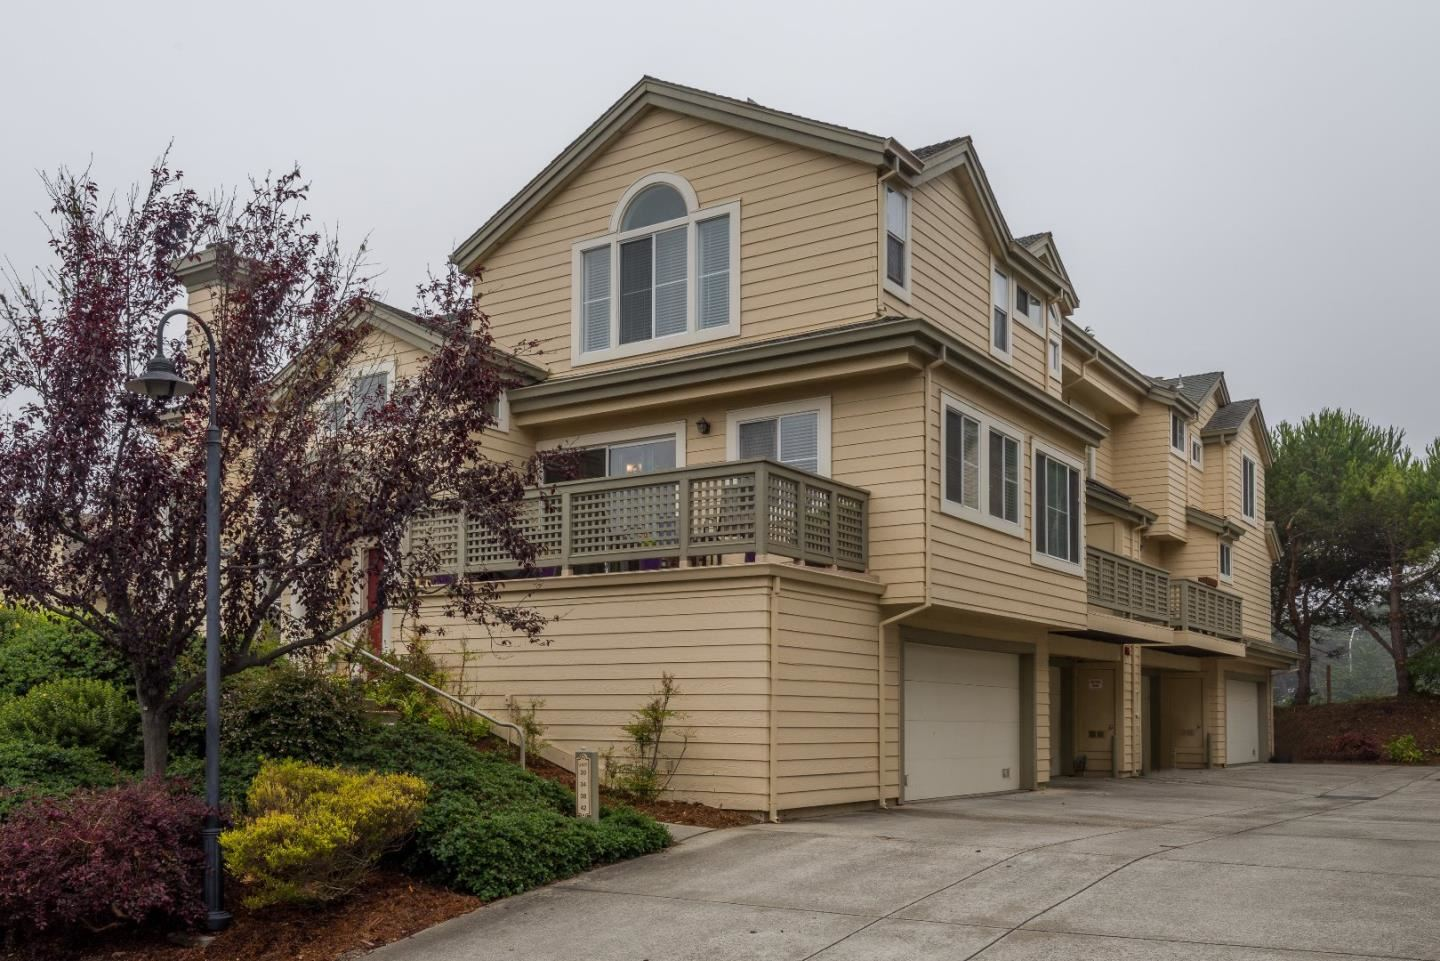 Photo for 30 Patrick WAY, HALF MOON BAY, CA 94019 (MLS # ML81834112)